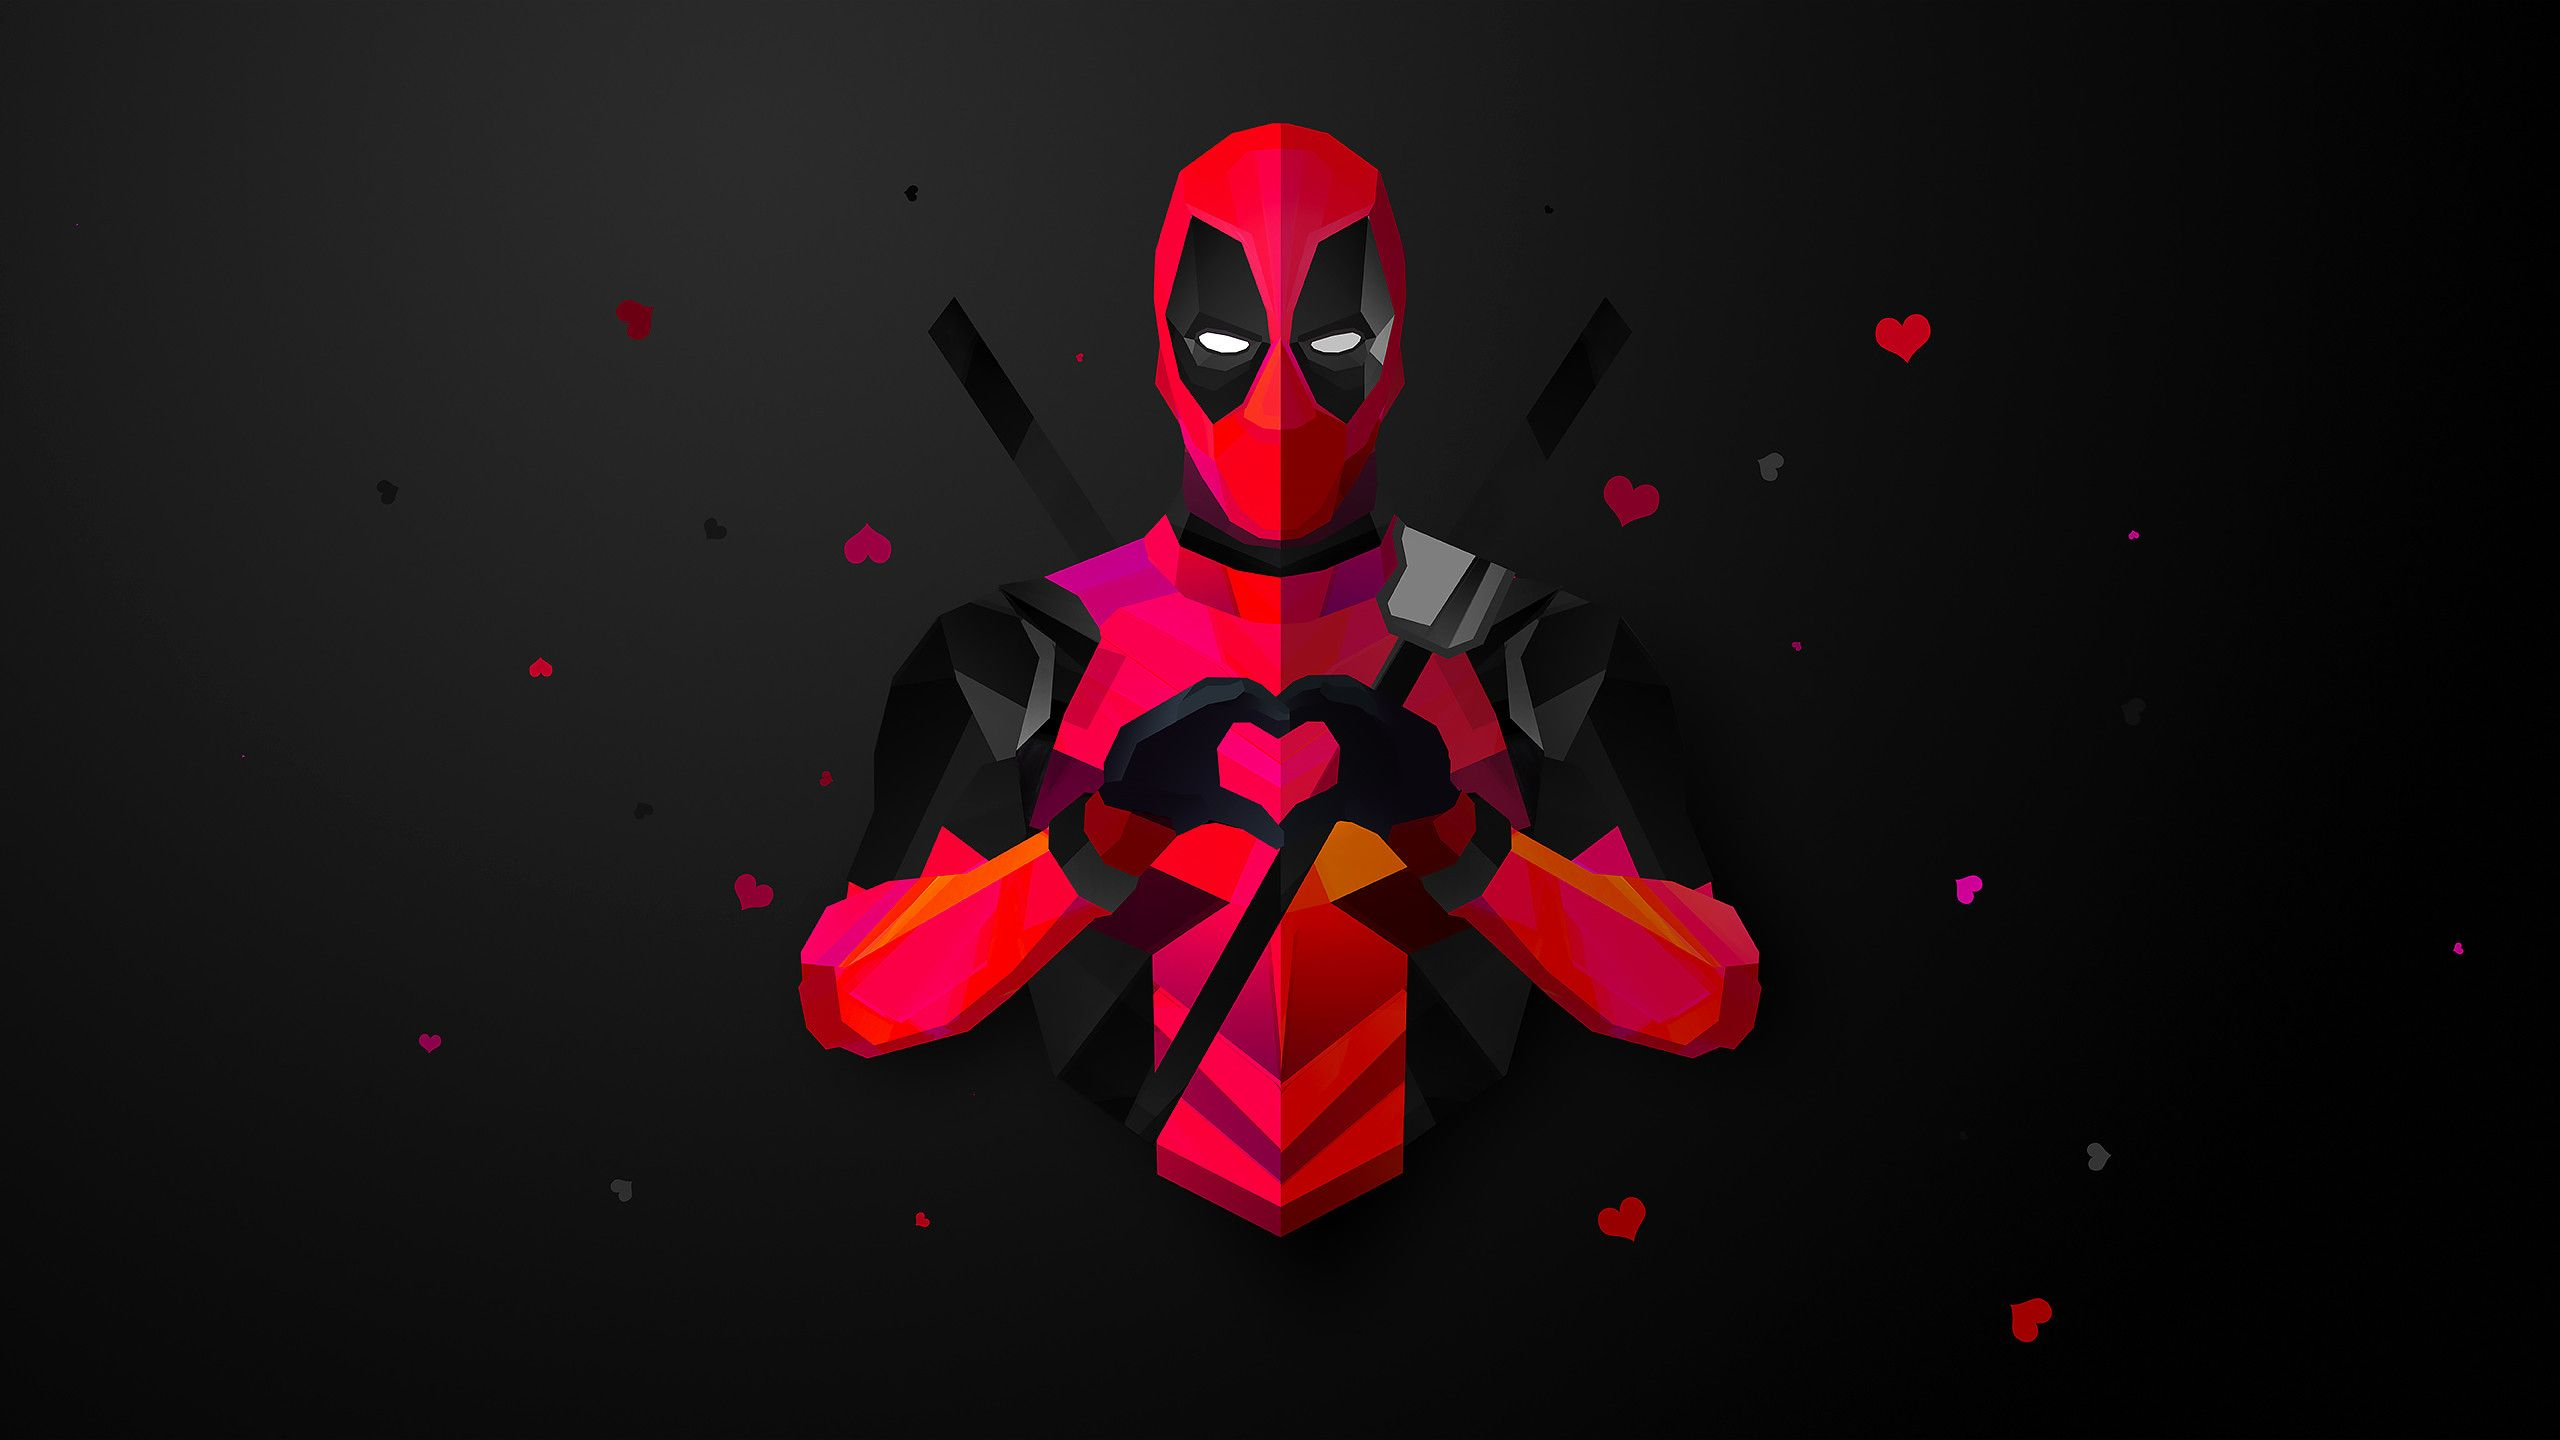 Elegant Movie Wallpaper Uri Movie Wallpaper 4k Download In 2020 Deadpool Wallpaper Superhero Wallpaper Deadpool Logo Wallpaper